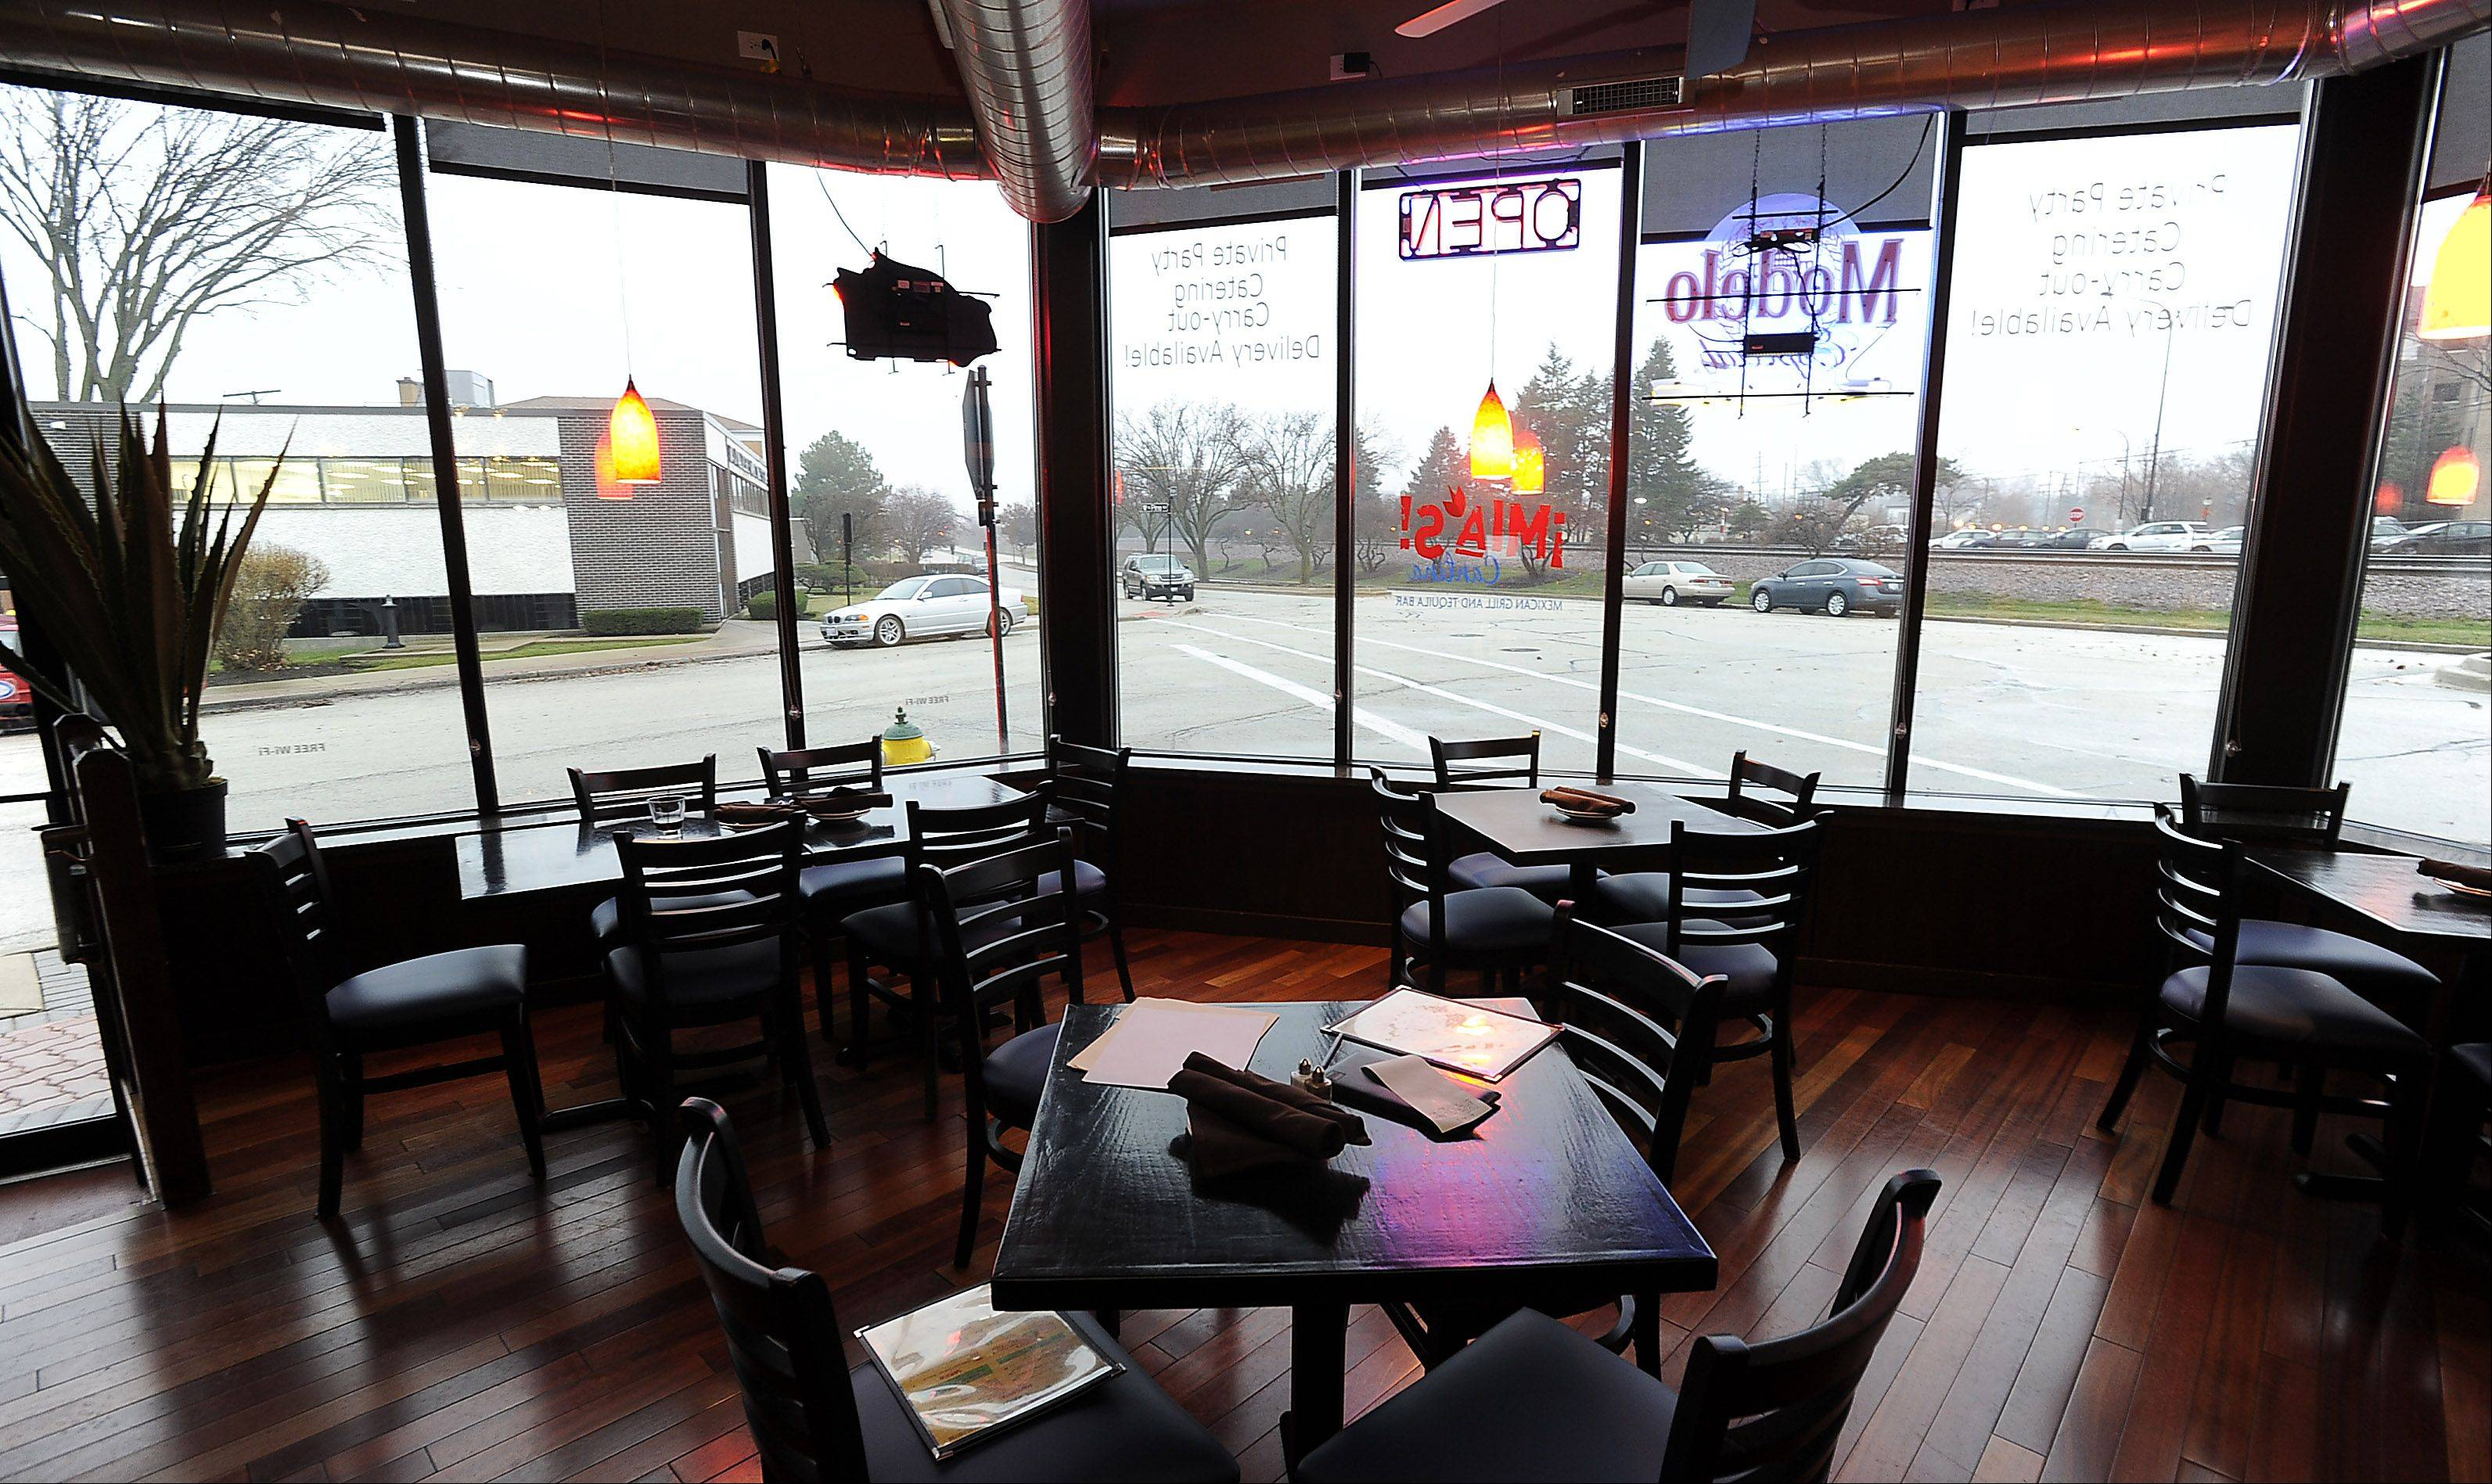 Mia's Cantina opened in downtown Mount Prospect in July 2012.